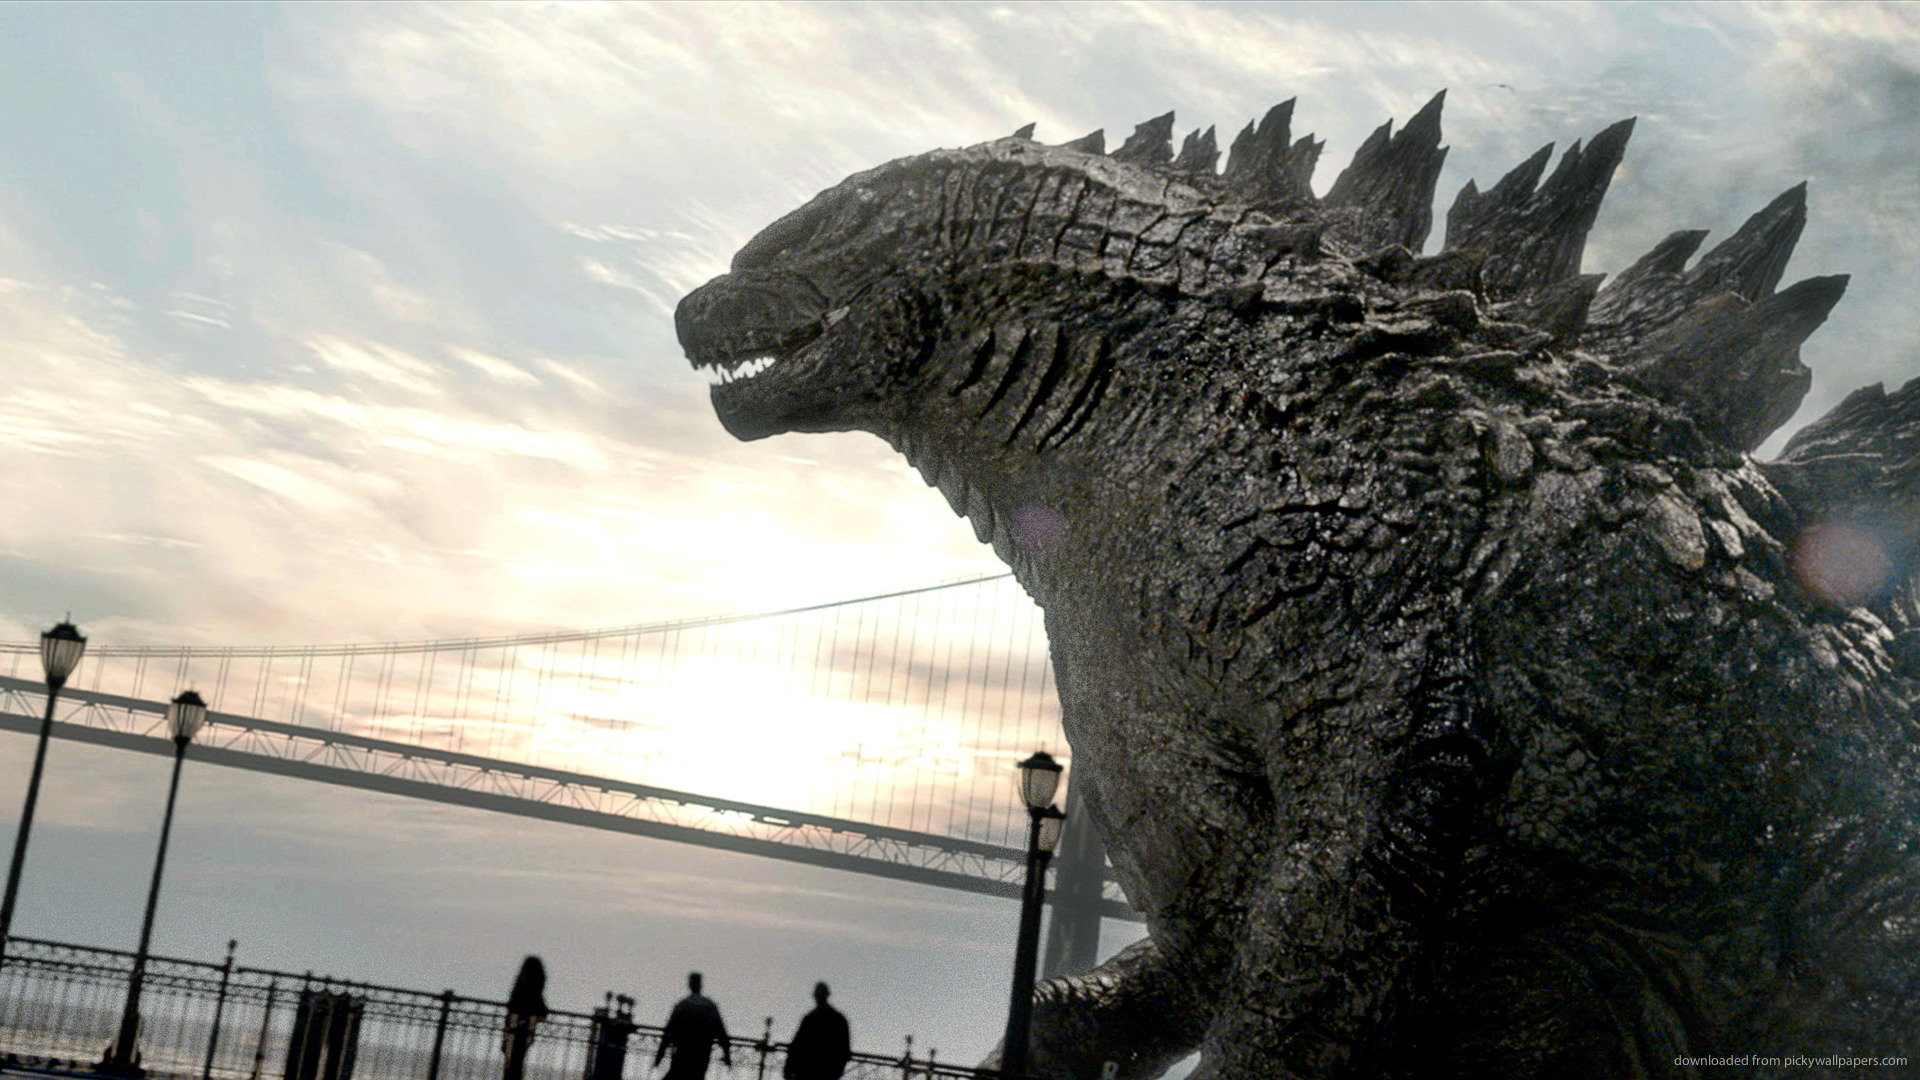 iPad Godzilla By The Bridge Screensaver For Kindle3 And DX 1920x1080